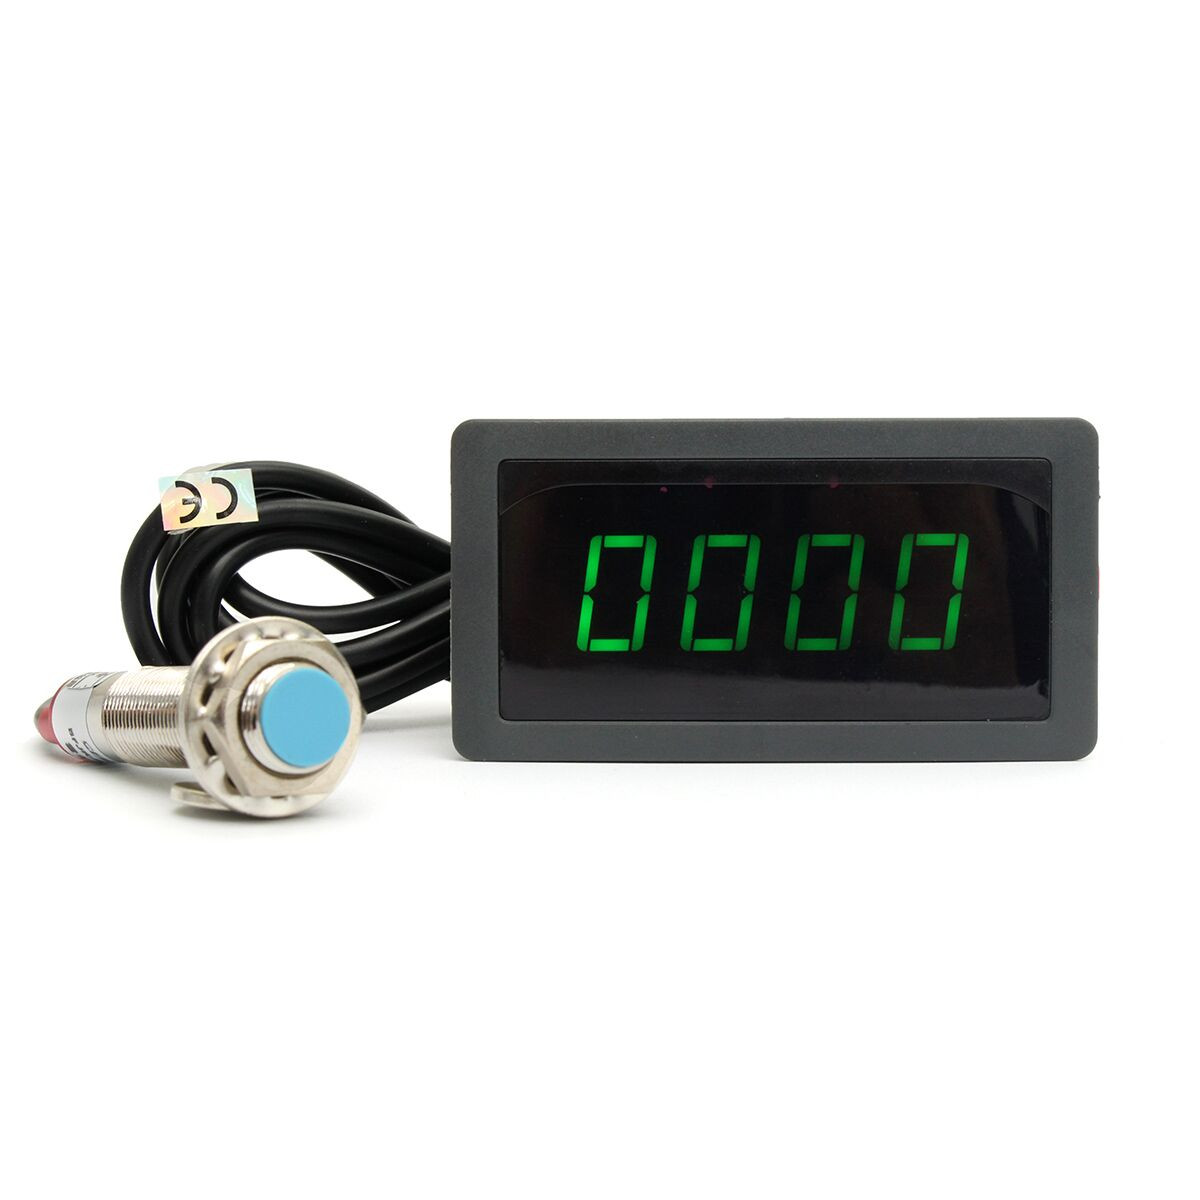 4 Digital Green LED Tachometer RPM Speed Meter+Proximity Switch Sensor 12V Measure range 5-9999RPM digital led punch tachometer rpm speed meter 5 9999rpm tacho gauge hall proximity switch sensor 12v 8 15v red